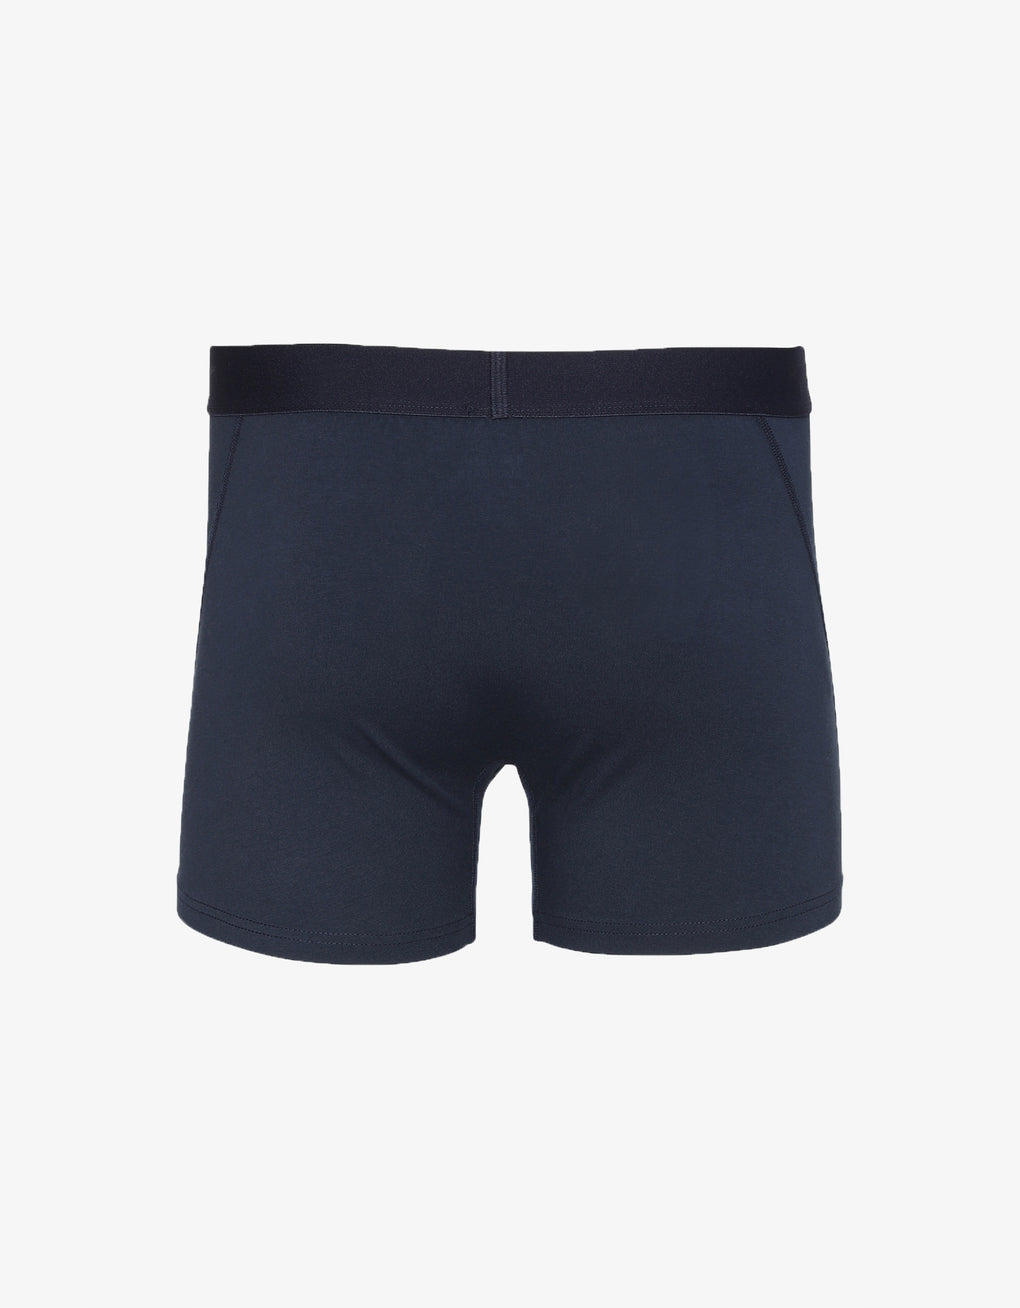 Colorful Standard Classic Organic Boxer Briefs Underwear Navy Blue